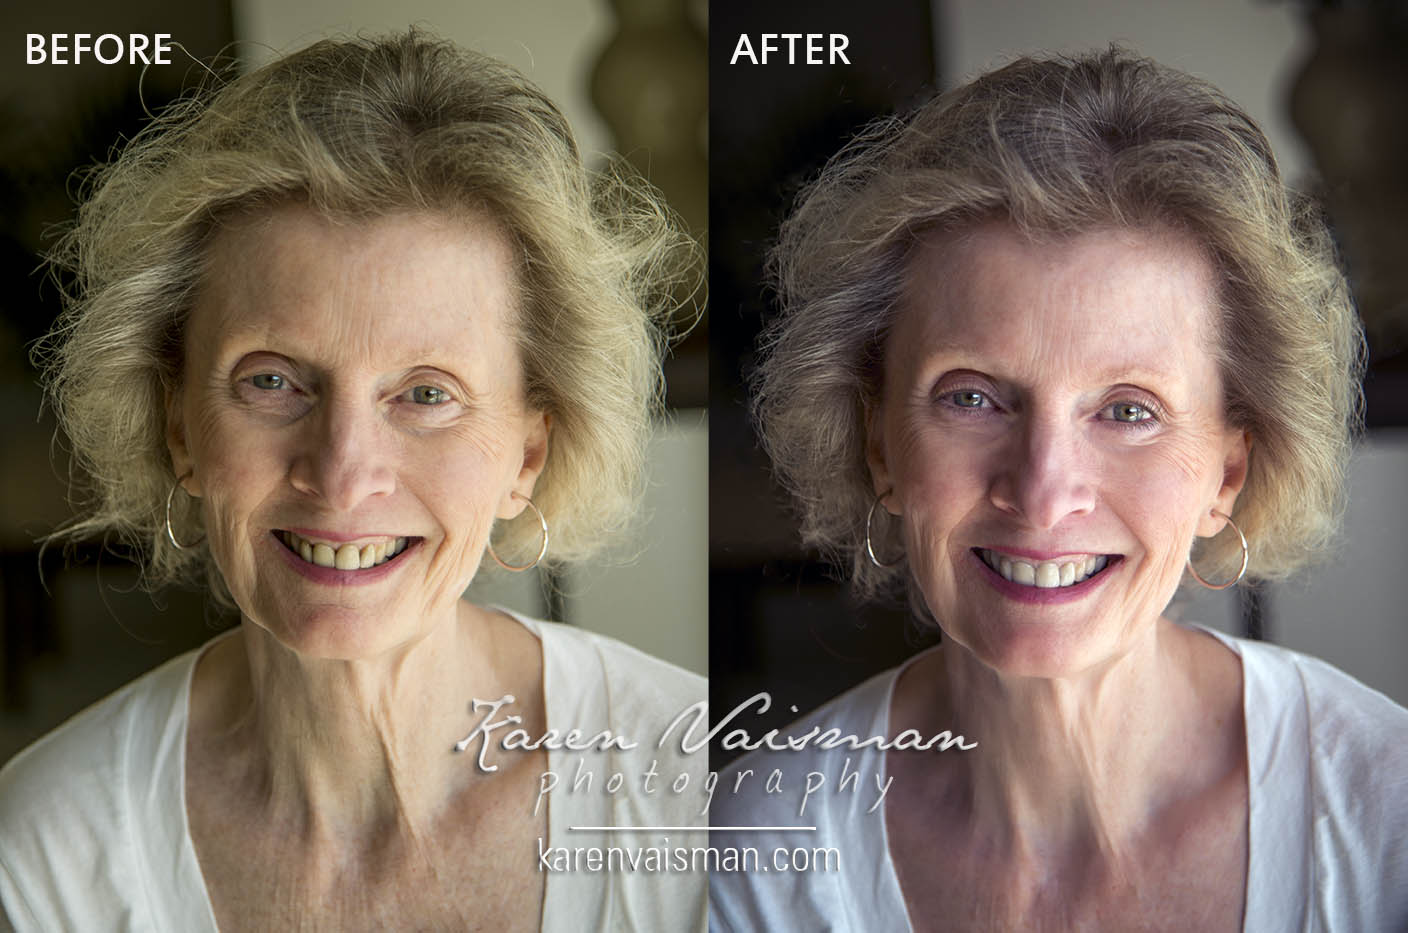 "Karen Vaisman Photography offers  professional retouching  that embraces the fine balance between ""enhancing"" your look with Photoshop without completely overdoing it. You want to show your true self; that sparkle in your eyes while removing distractions (stray hairs, under eye circles) but still reflect warmth with a welcoming smile. Professional retouching by Karen could make the difference between that 1/10th of a second,  research shows, is all it takes to get passed over  and having that  special someone  actually stop, take a closer look, and then contact you!"